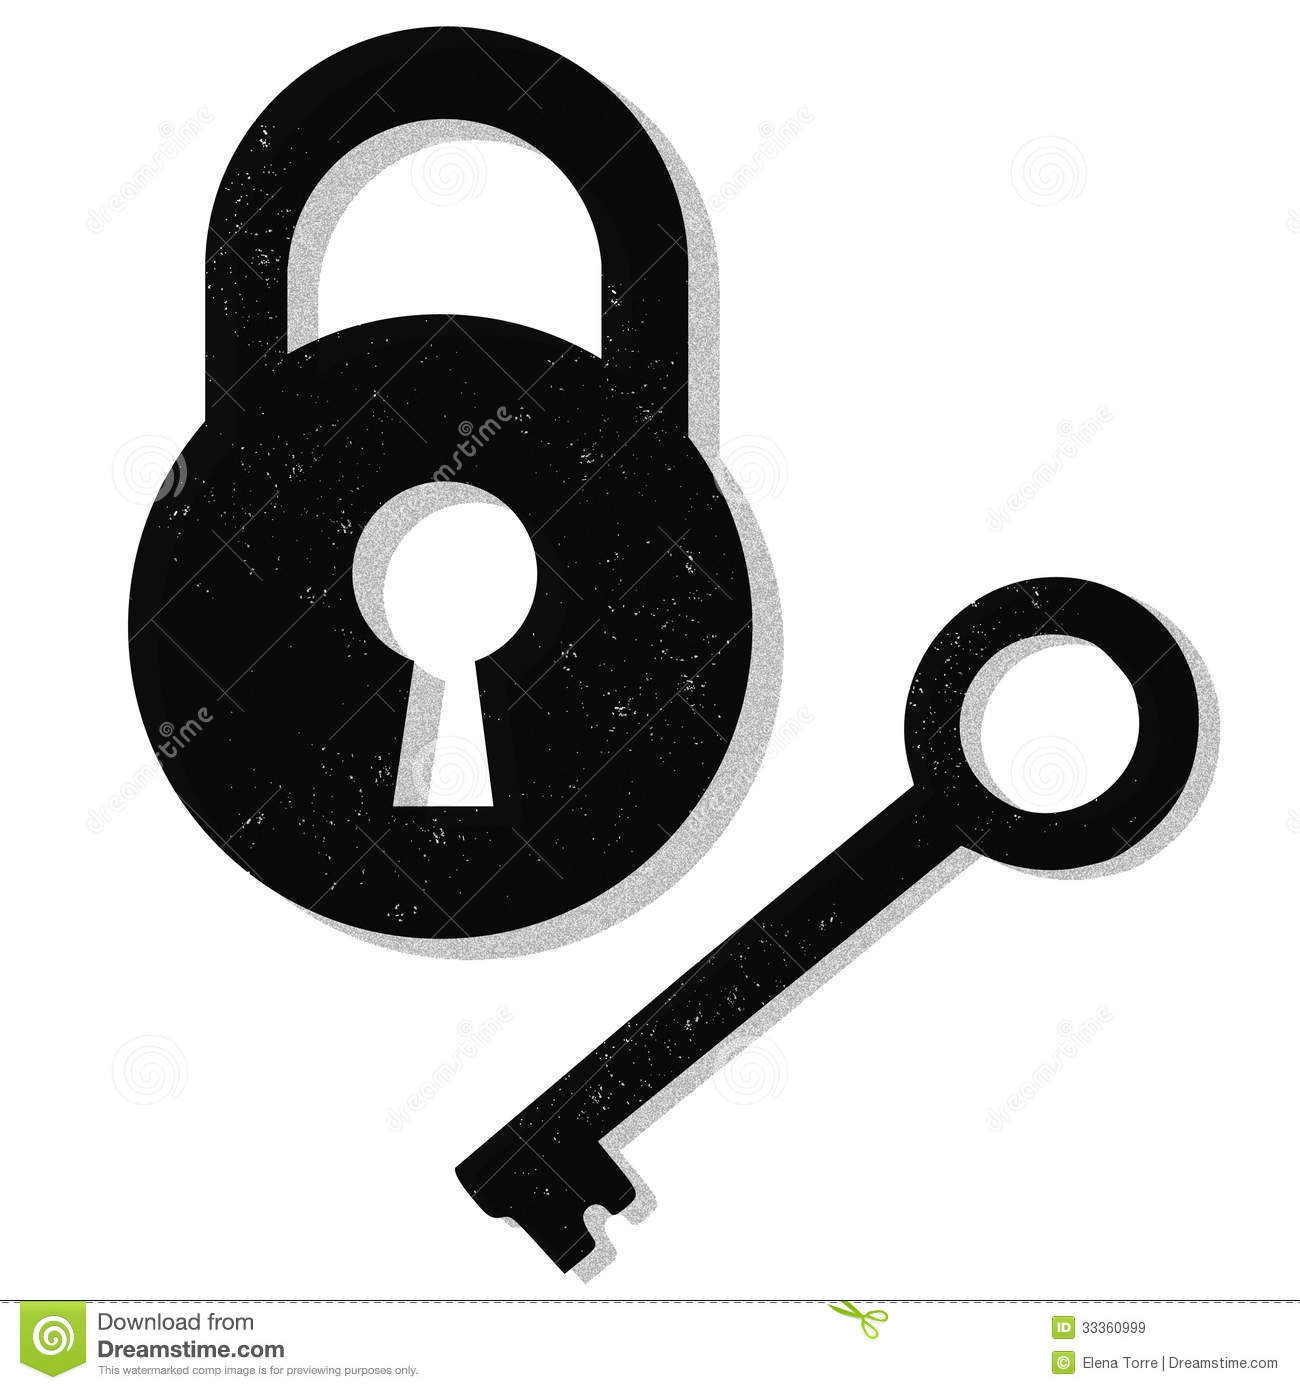 Illustration Of A Lock And Key Isolated On White Background